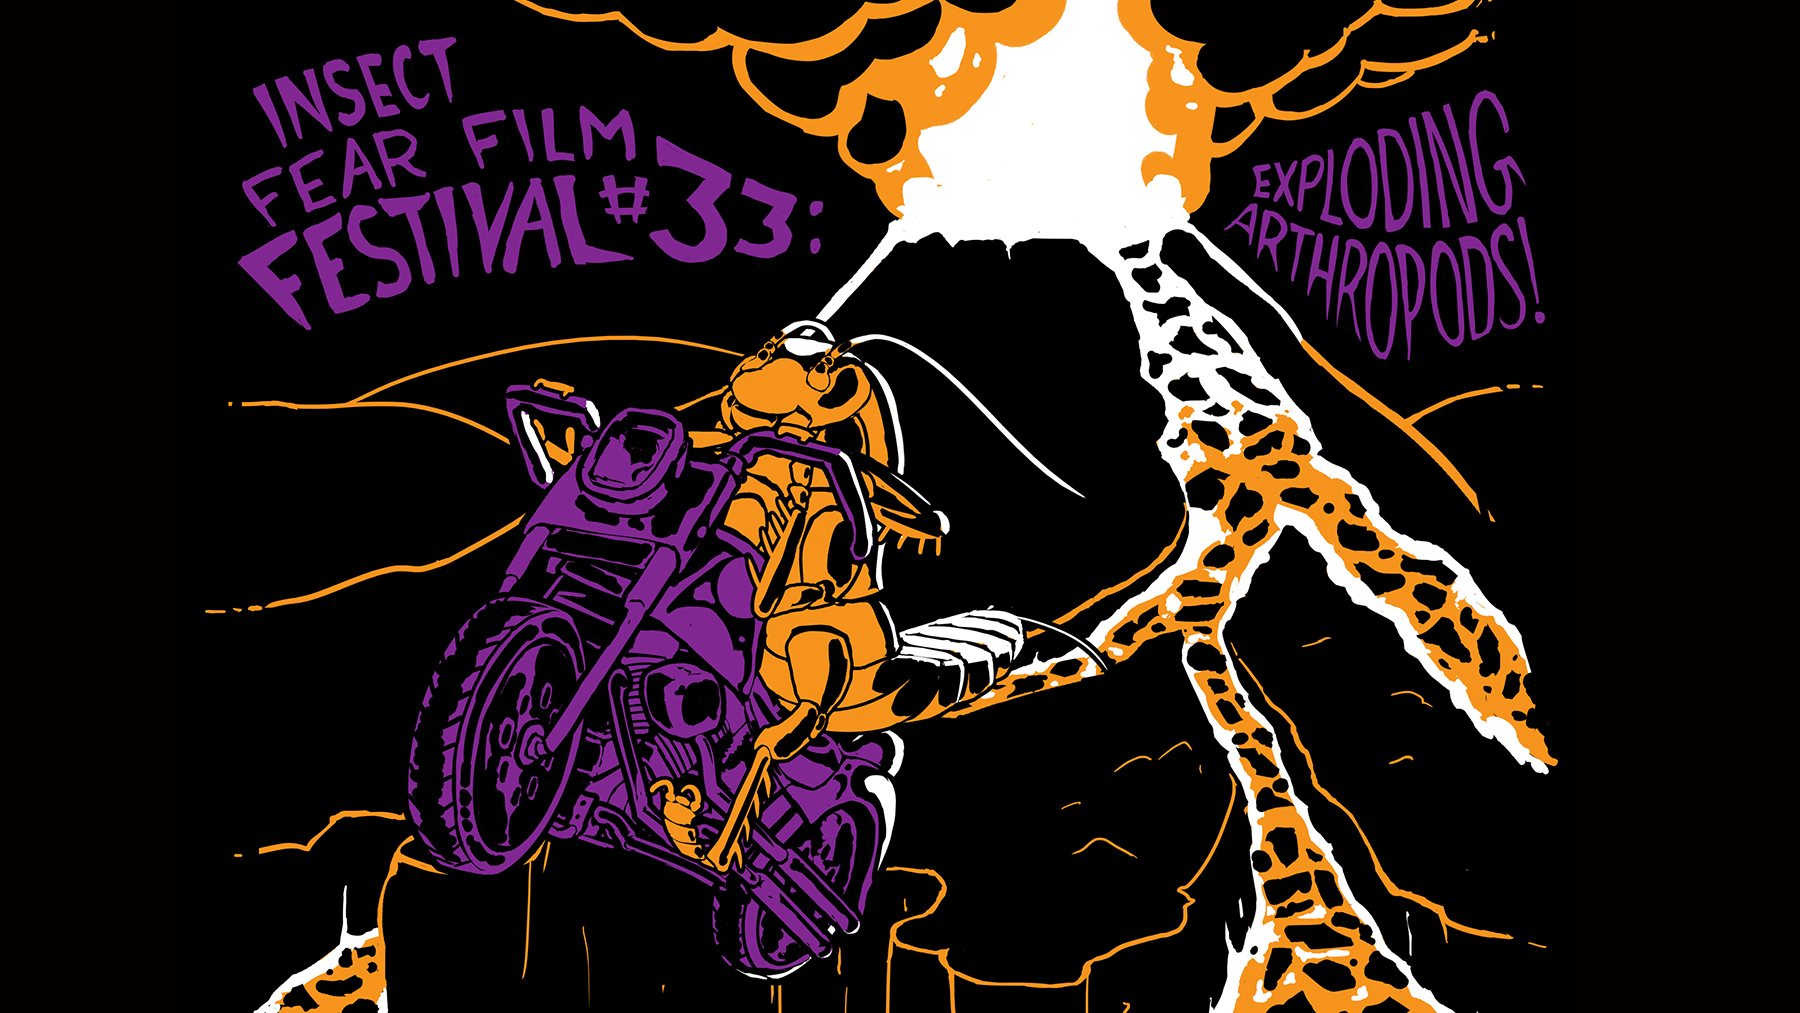 Graphic image promoting the Insect Fear Film Festival, by Chip Austin